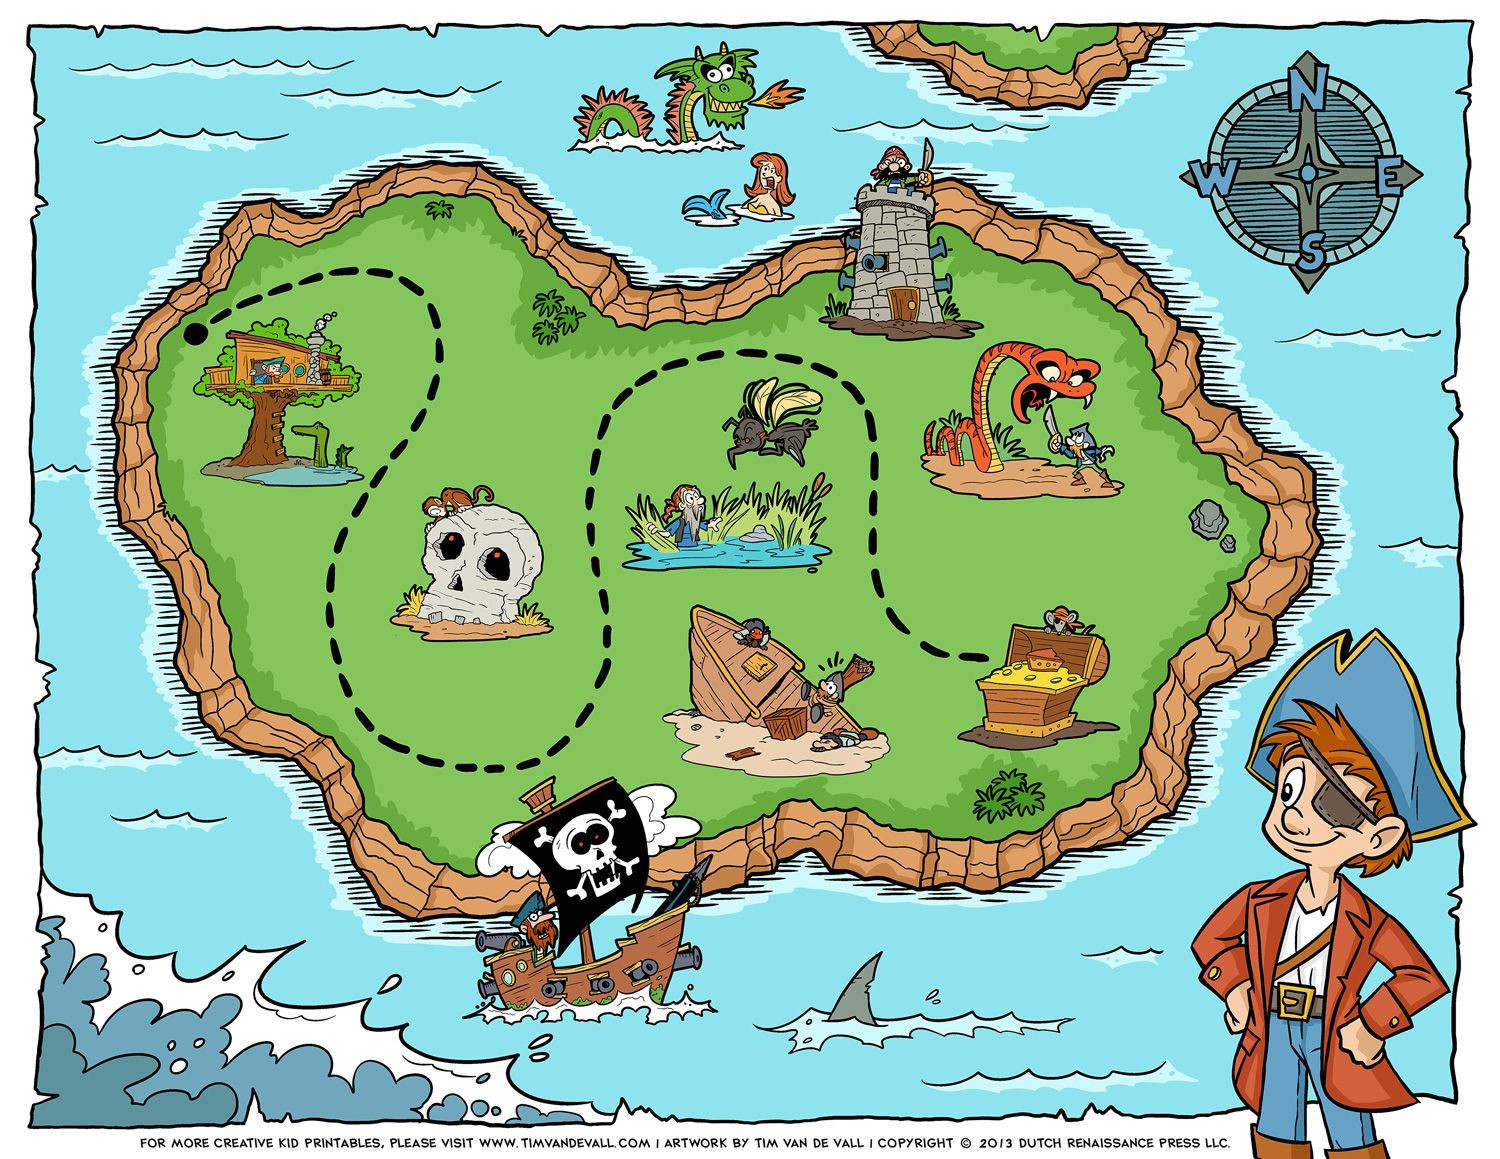 Wet N Wild Printable Map New Free Pirate Treasure Maps And Party Favors For A Pirate Birthday